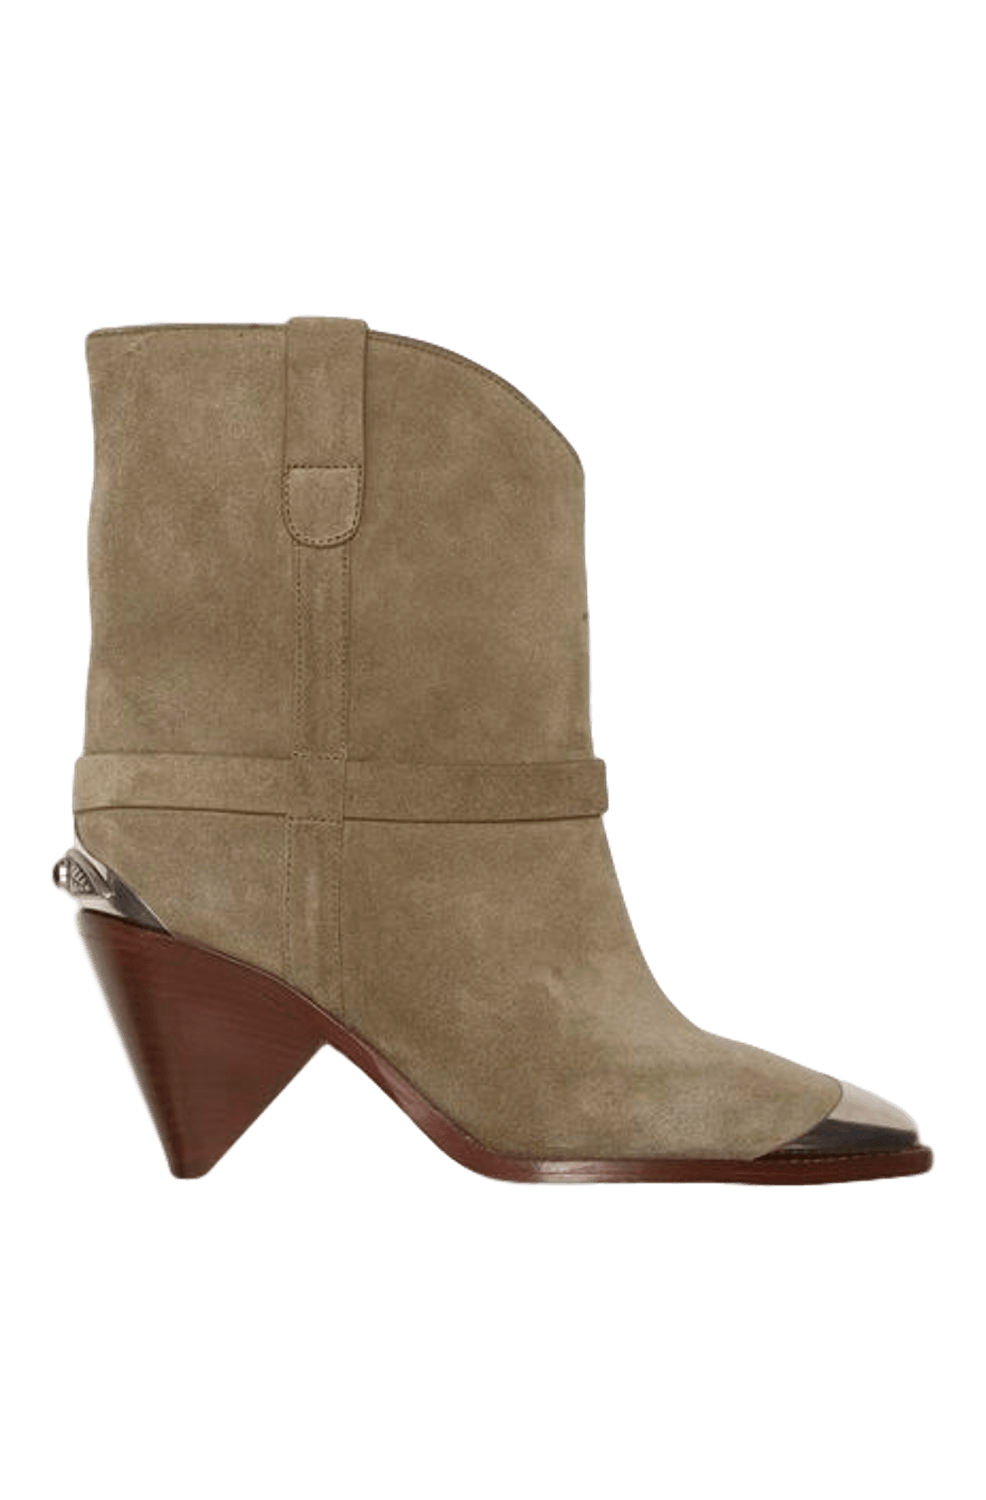 Limza Boots / Taupe Womens Isabel Marant